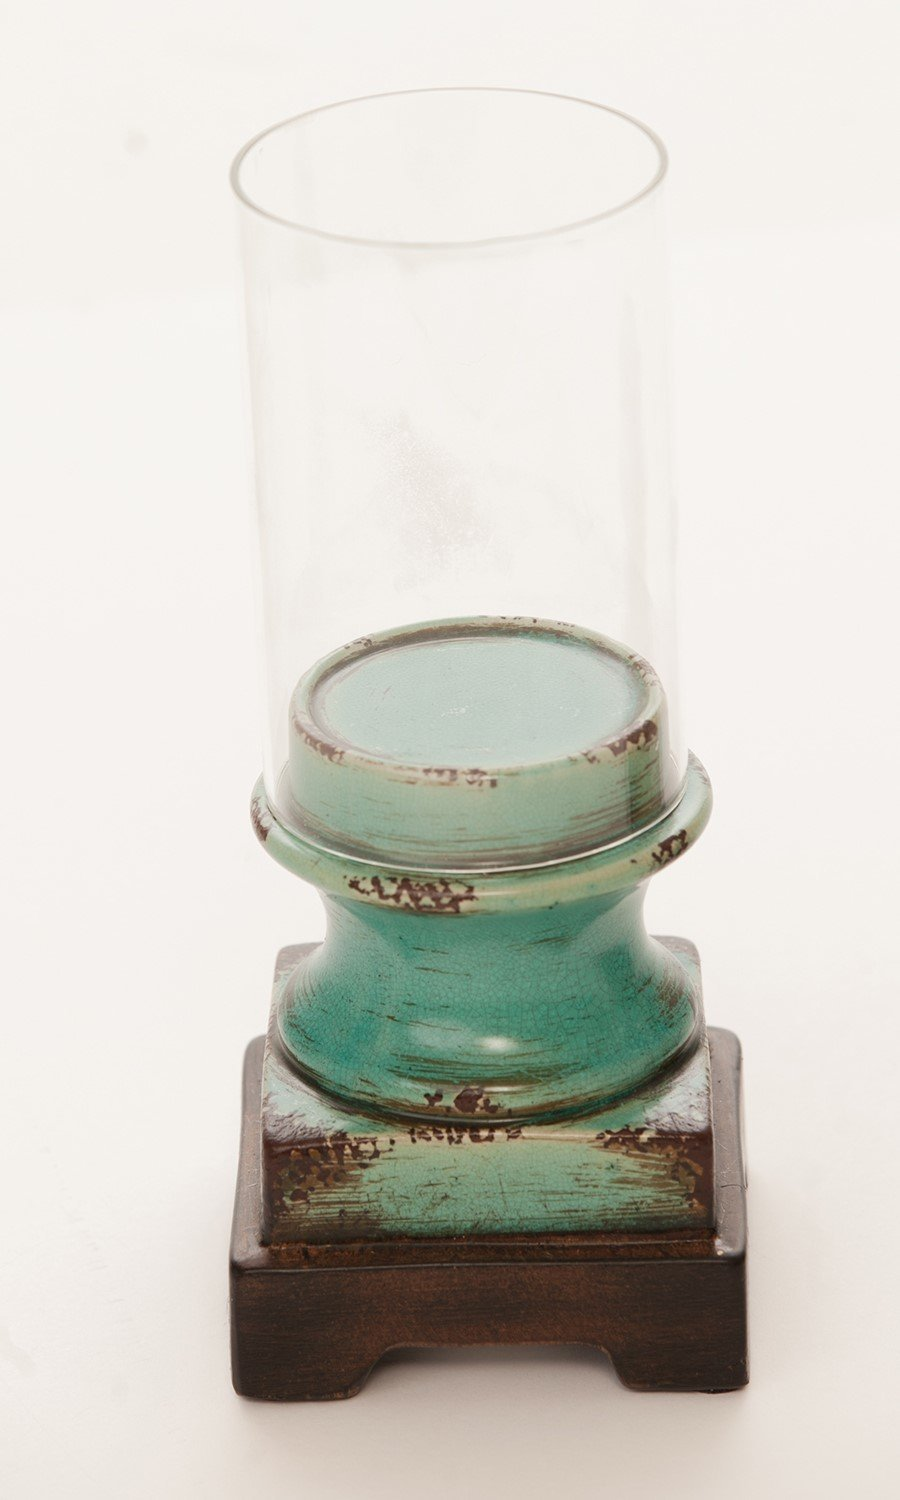 Teal Colored Ceramic Candle Holder with Hurricane Globe